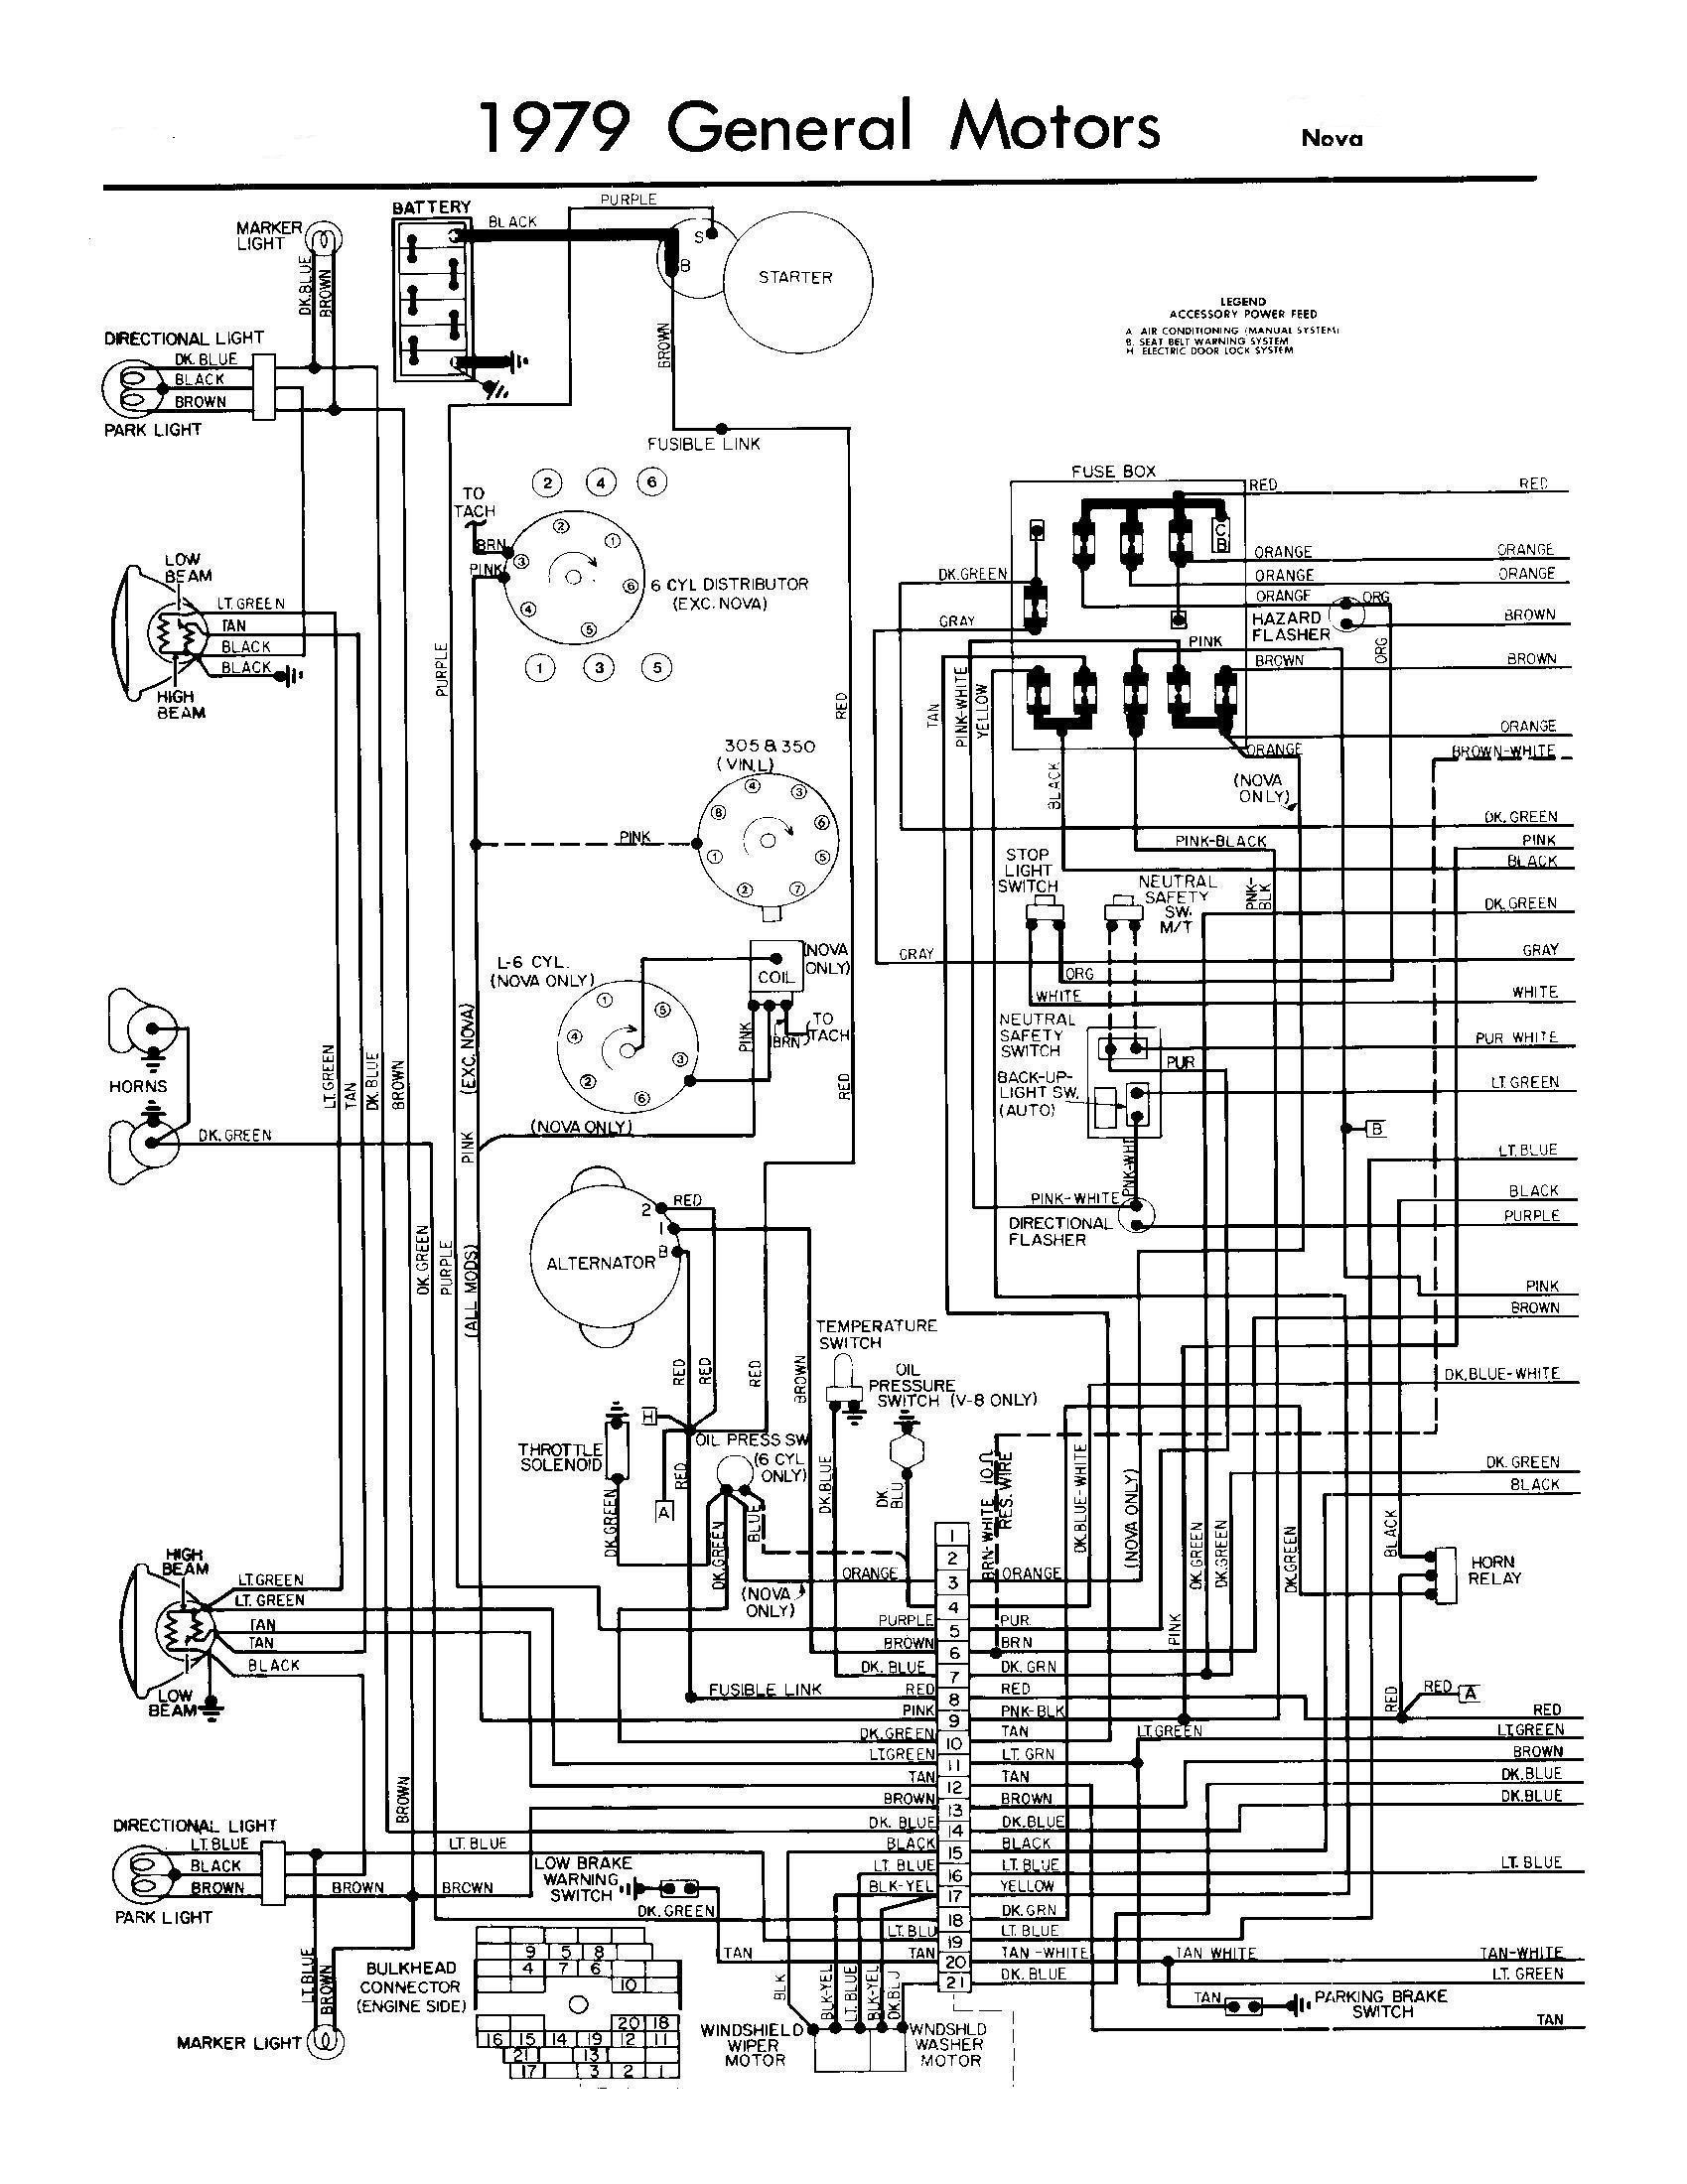 1970 corvette wiring diagram wiring diagram1969 nova wiring harness online wiring diagram 1970 corvette